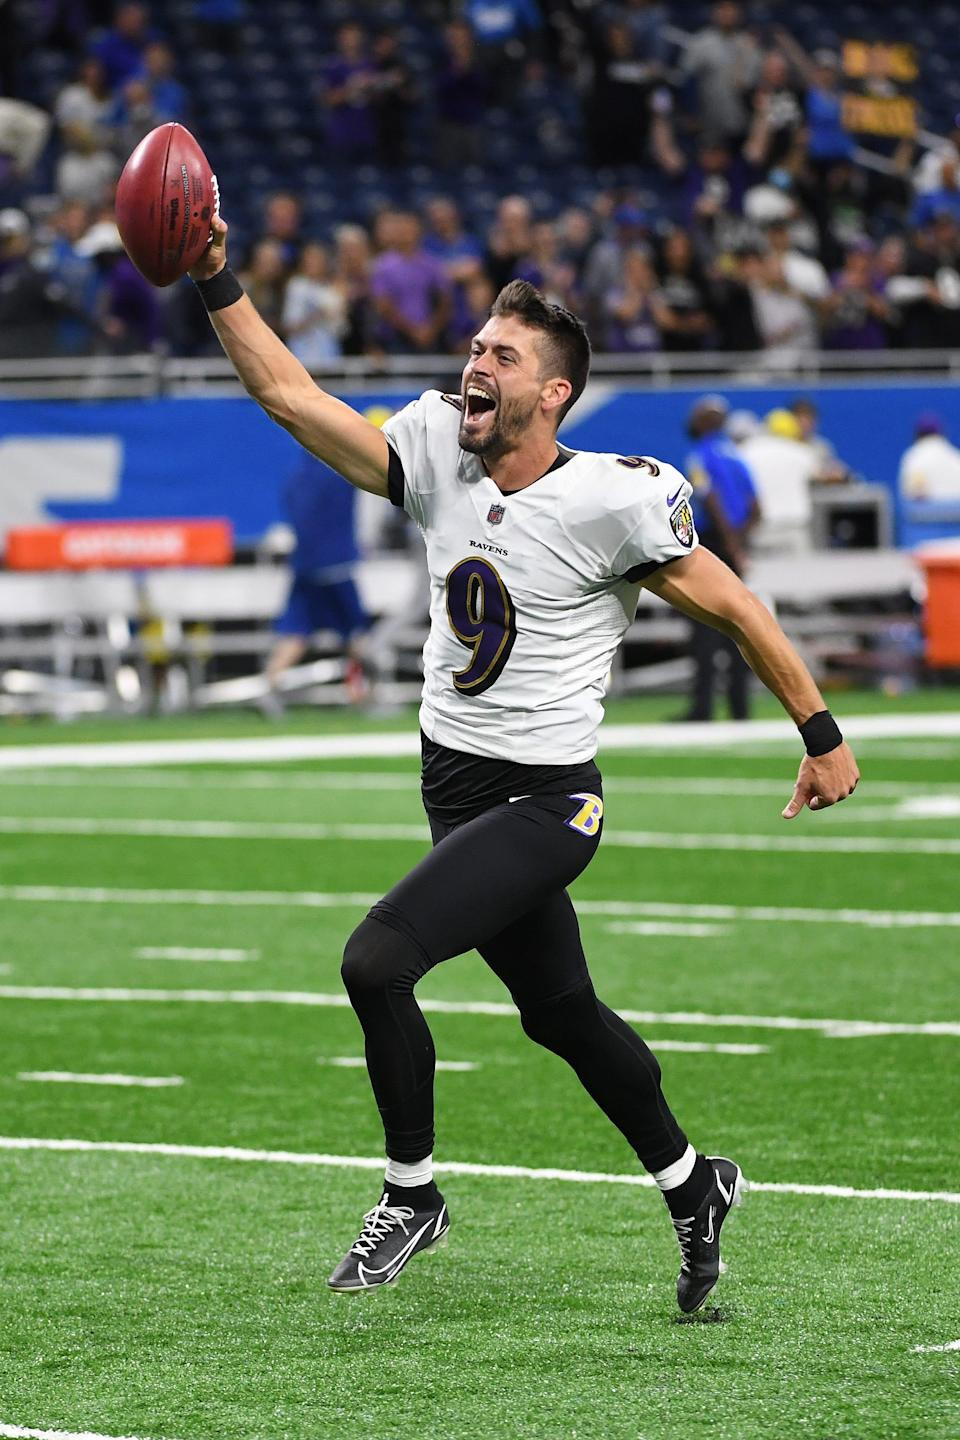 Baltimore Ravens kicker Justin Tucker celebrates his winning field goal to defeat the Detroit Lions, 19-17, at Ford Field on Sept.26, 2021 in Detroit.